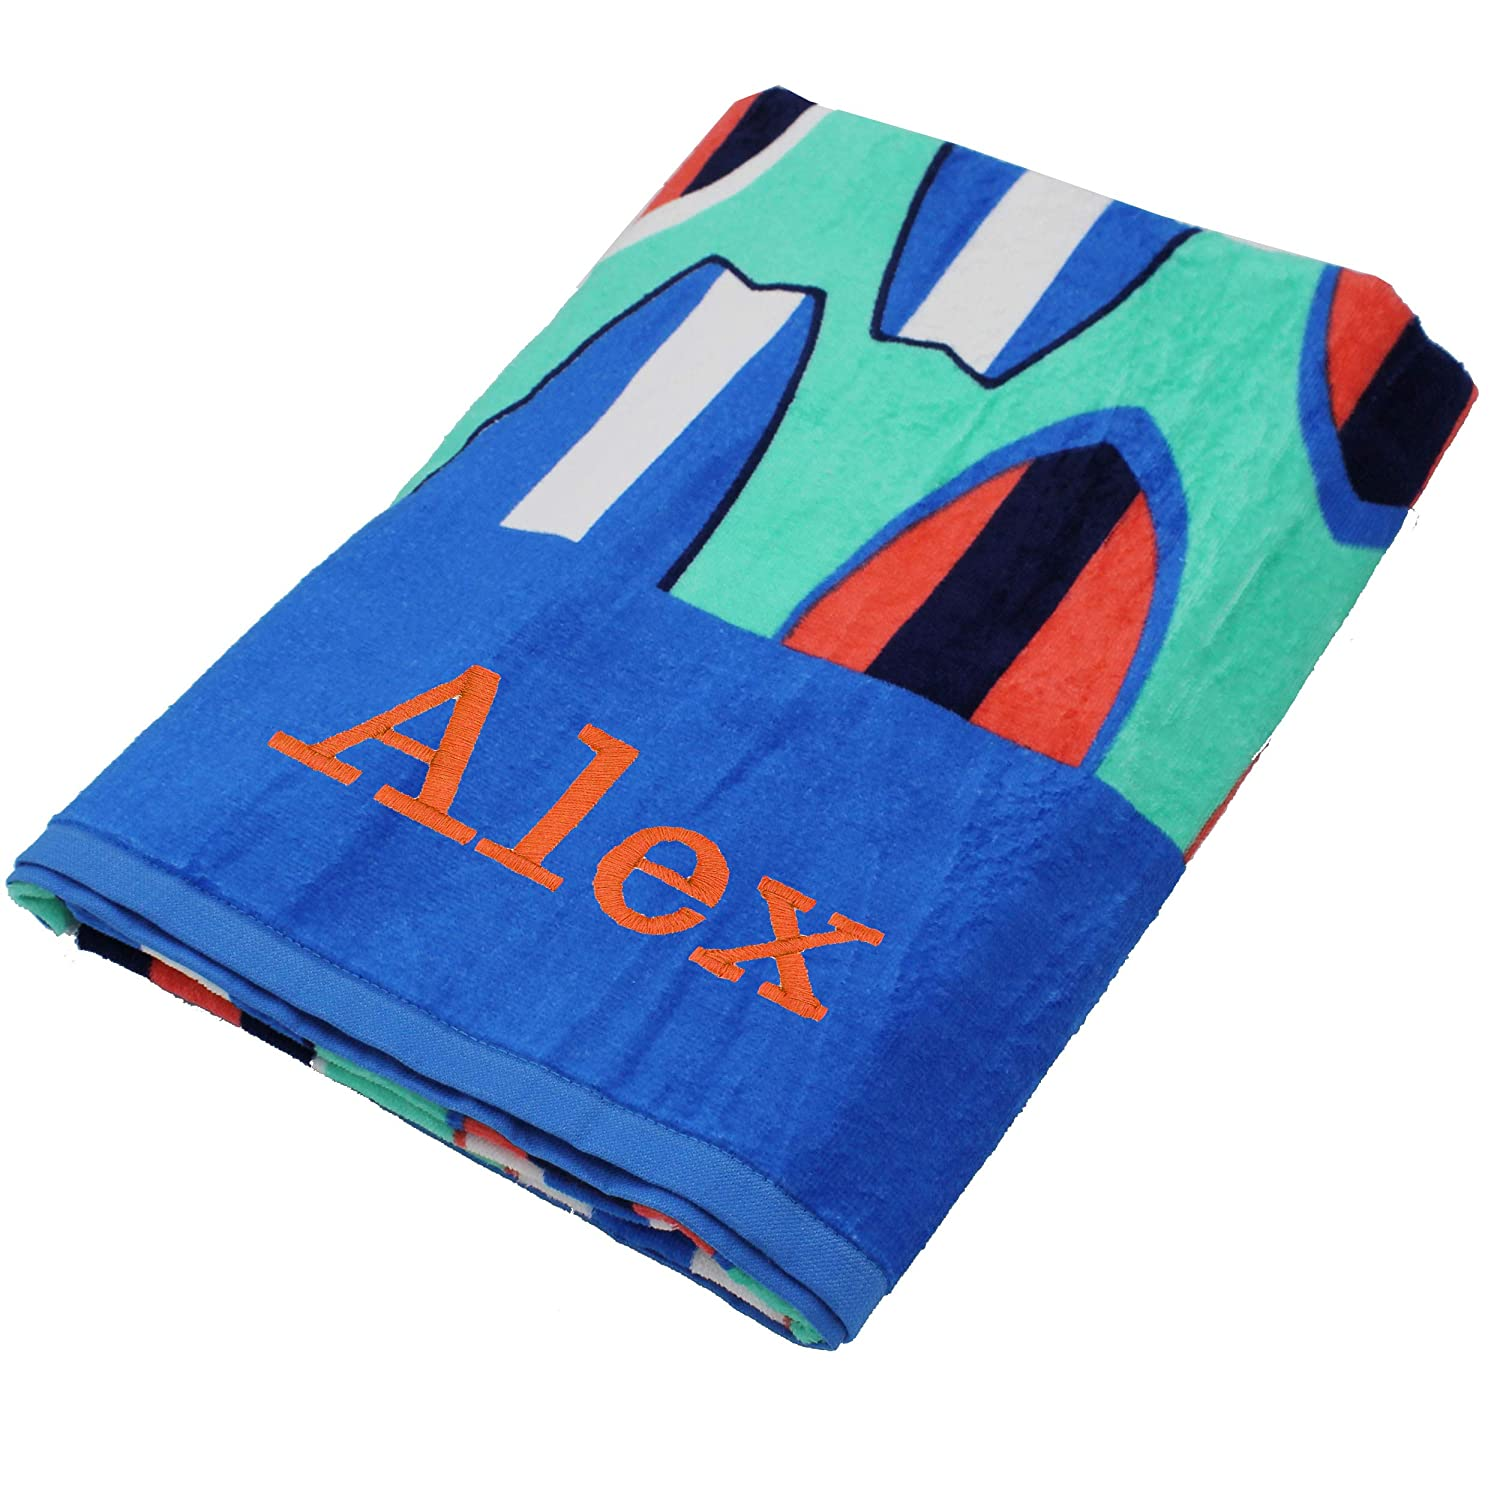 Personalized Beach Towels Monogrammed Gifts For Kids Her Him Custom Embroidered Towel Surfboards